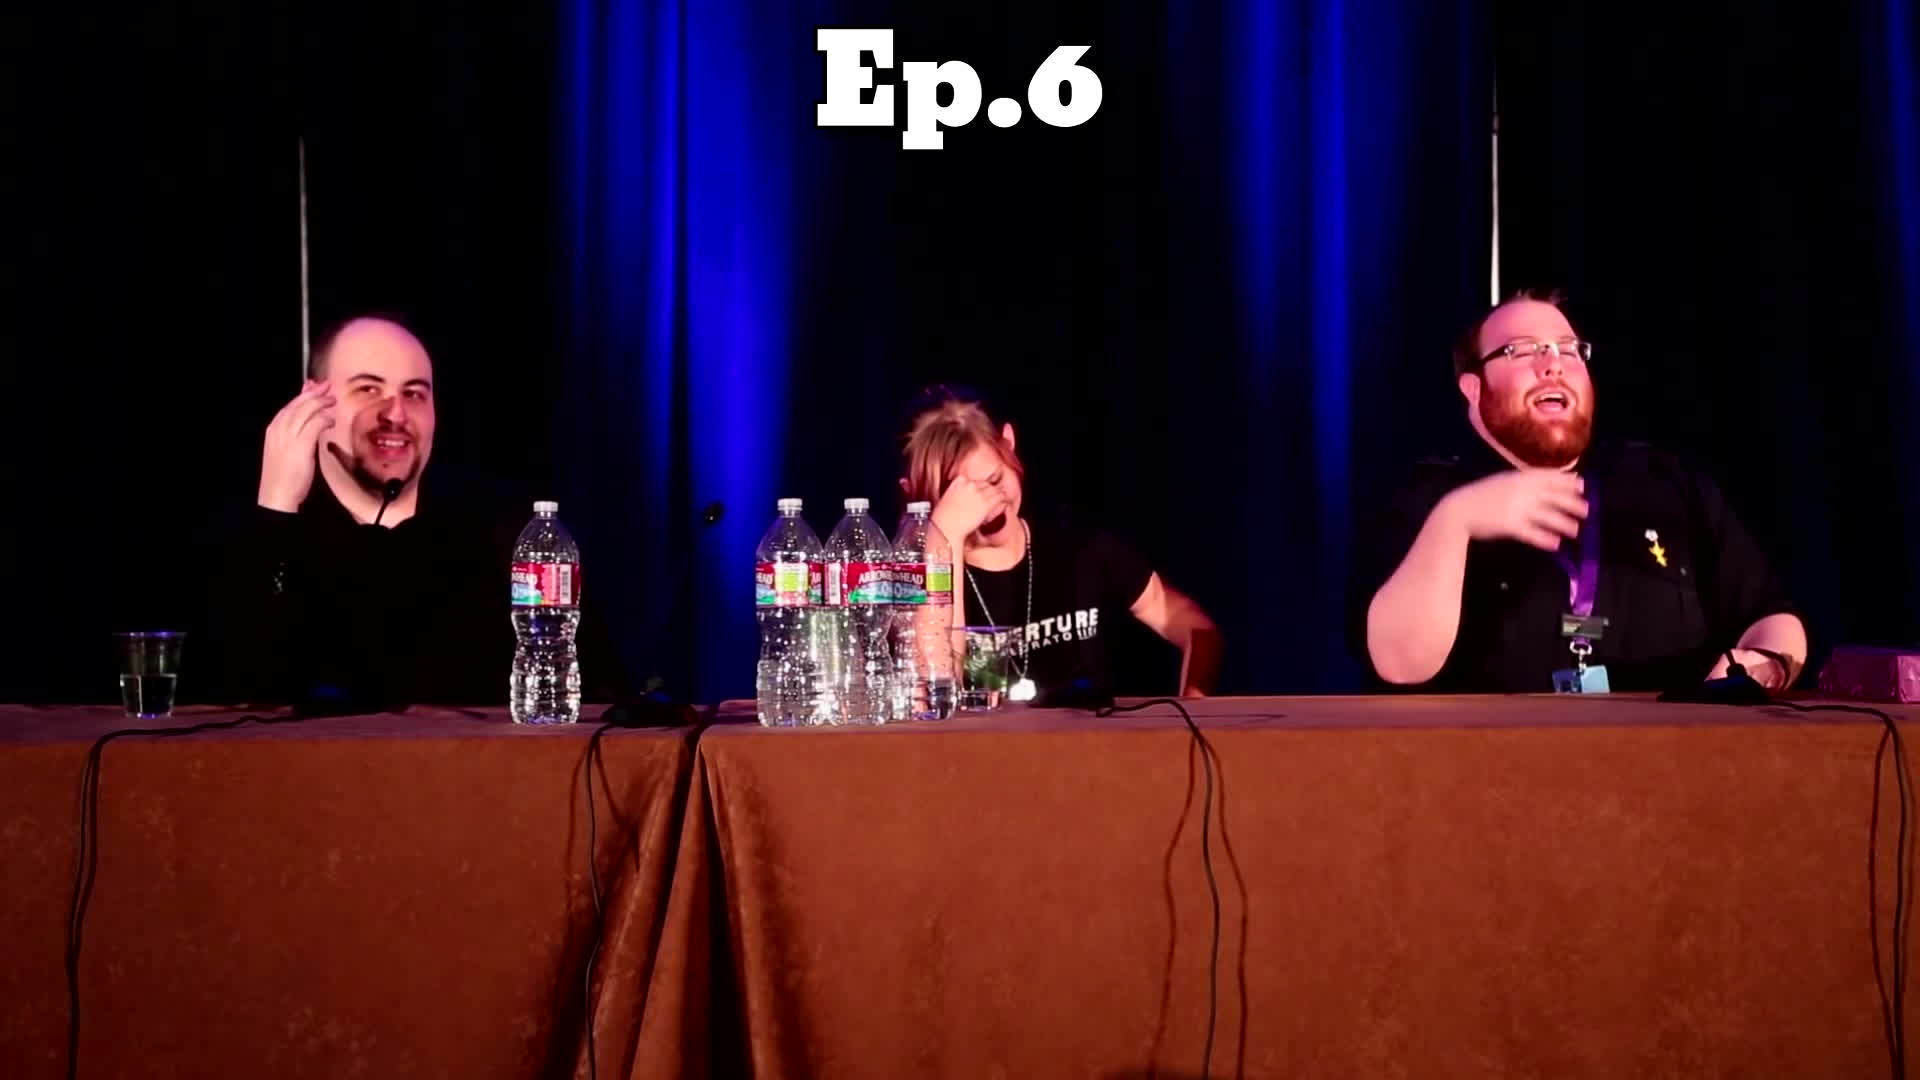 co-optional podcast, jessecox totalbiscuit dodger, oculus rift, Co-Optional Podcast Facepalm GIFs